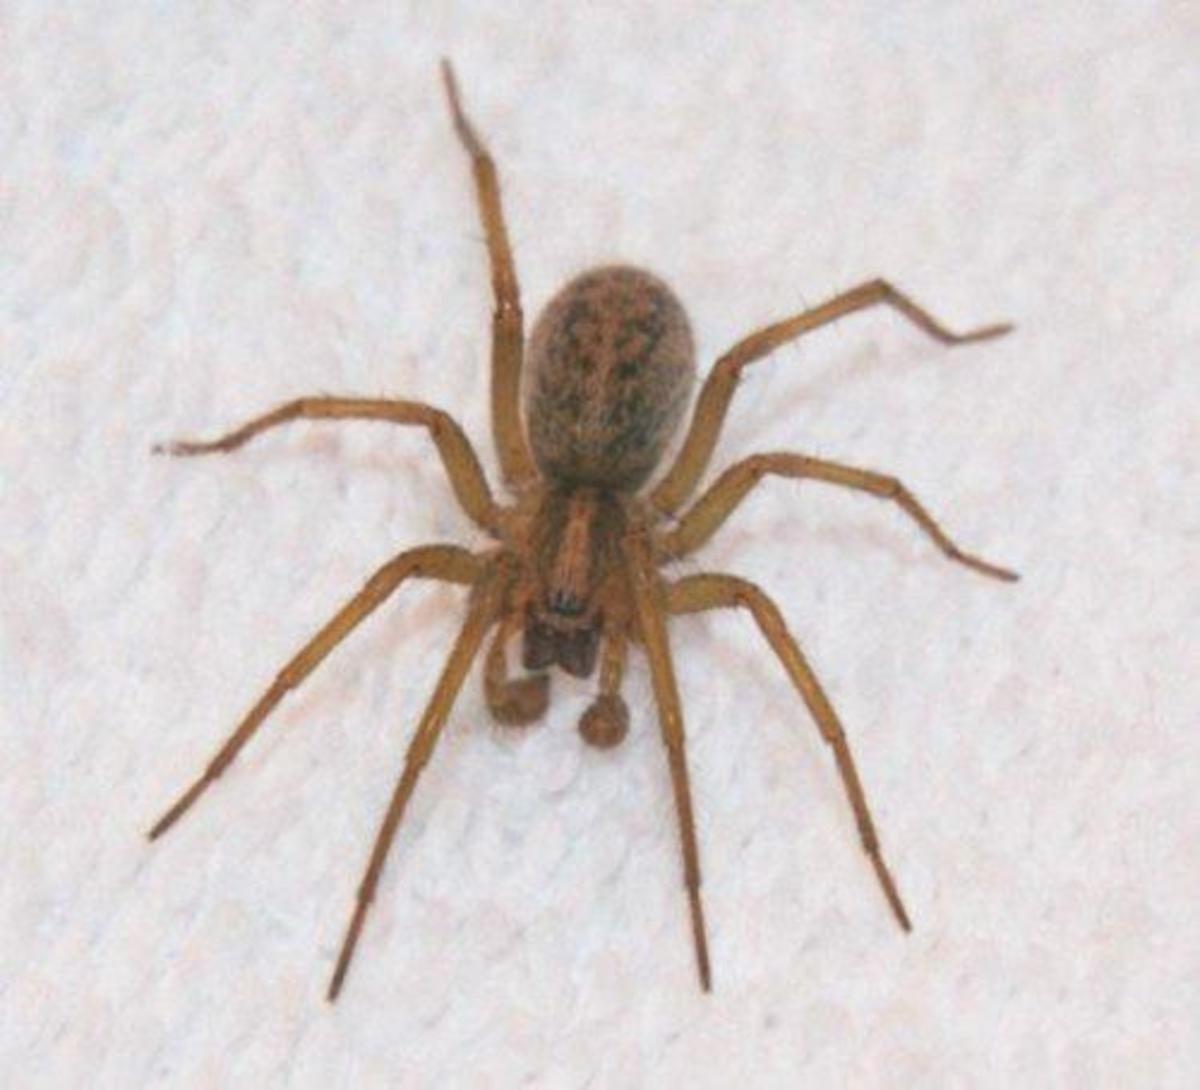 Hobo spiders are often confused with giant house spiders or brown recluses.